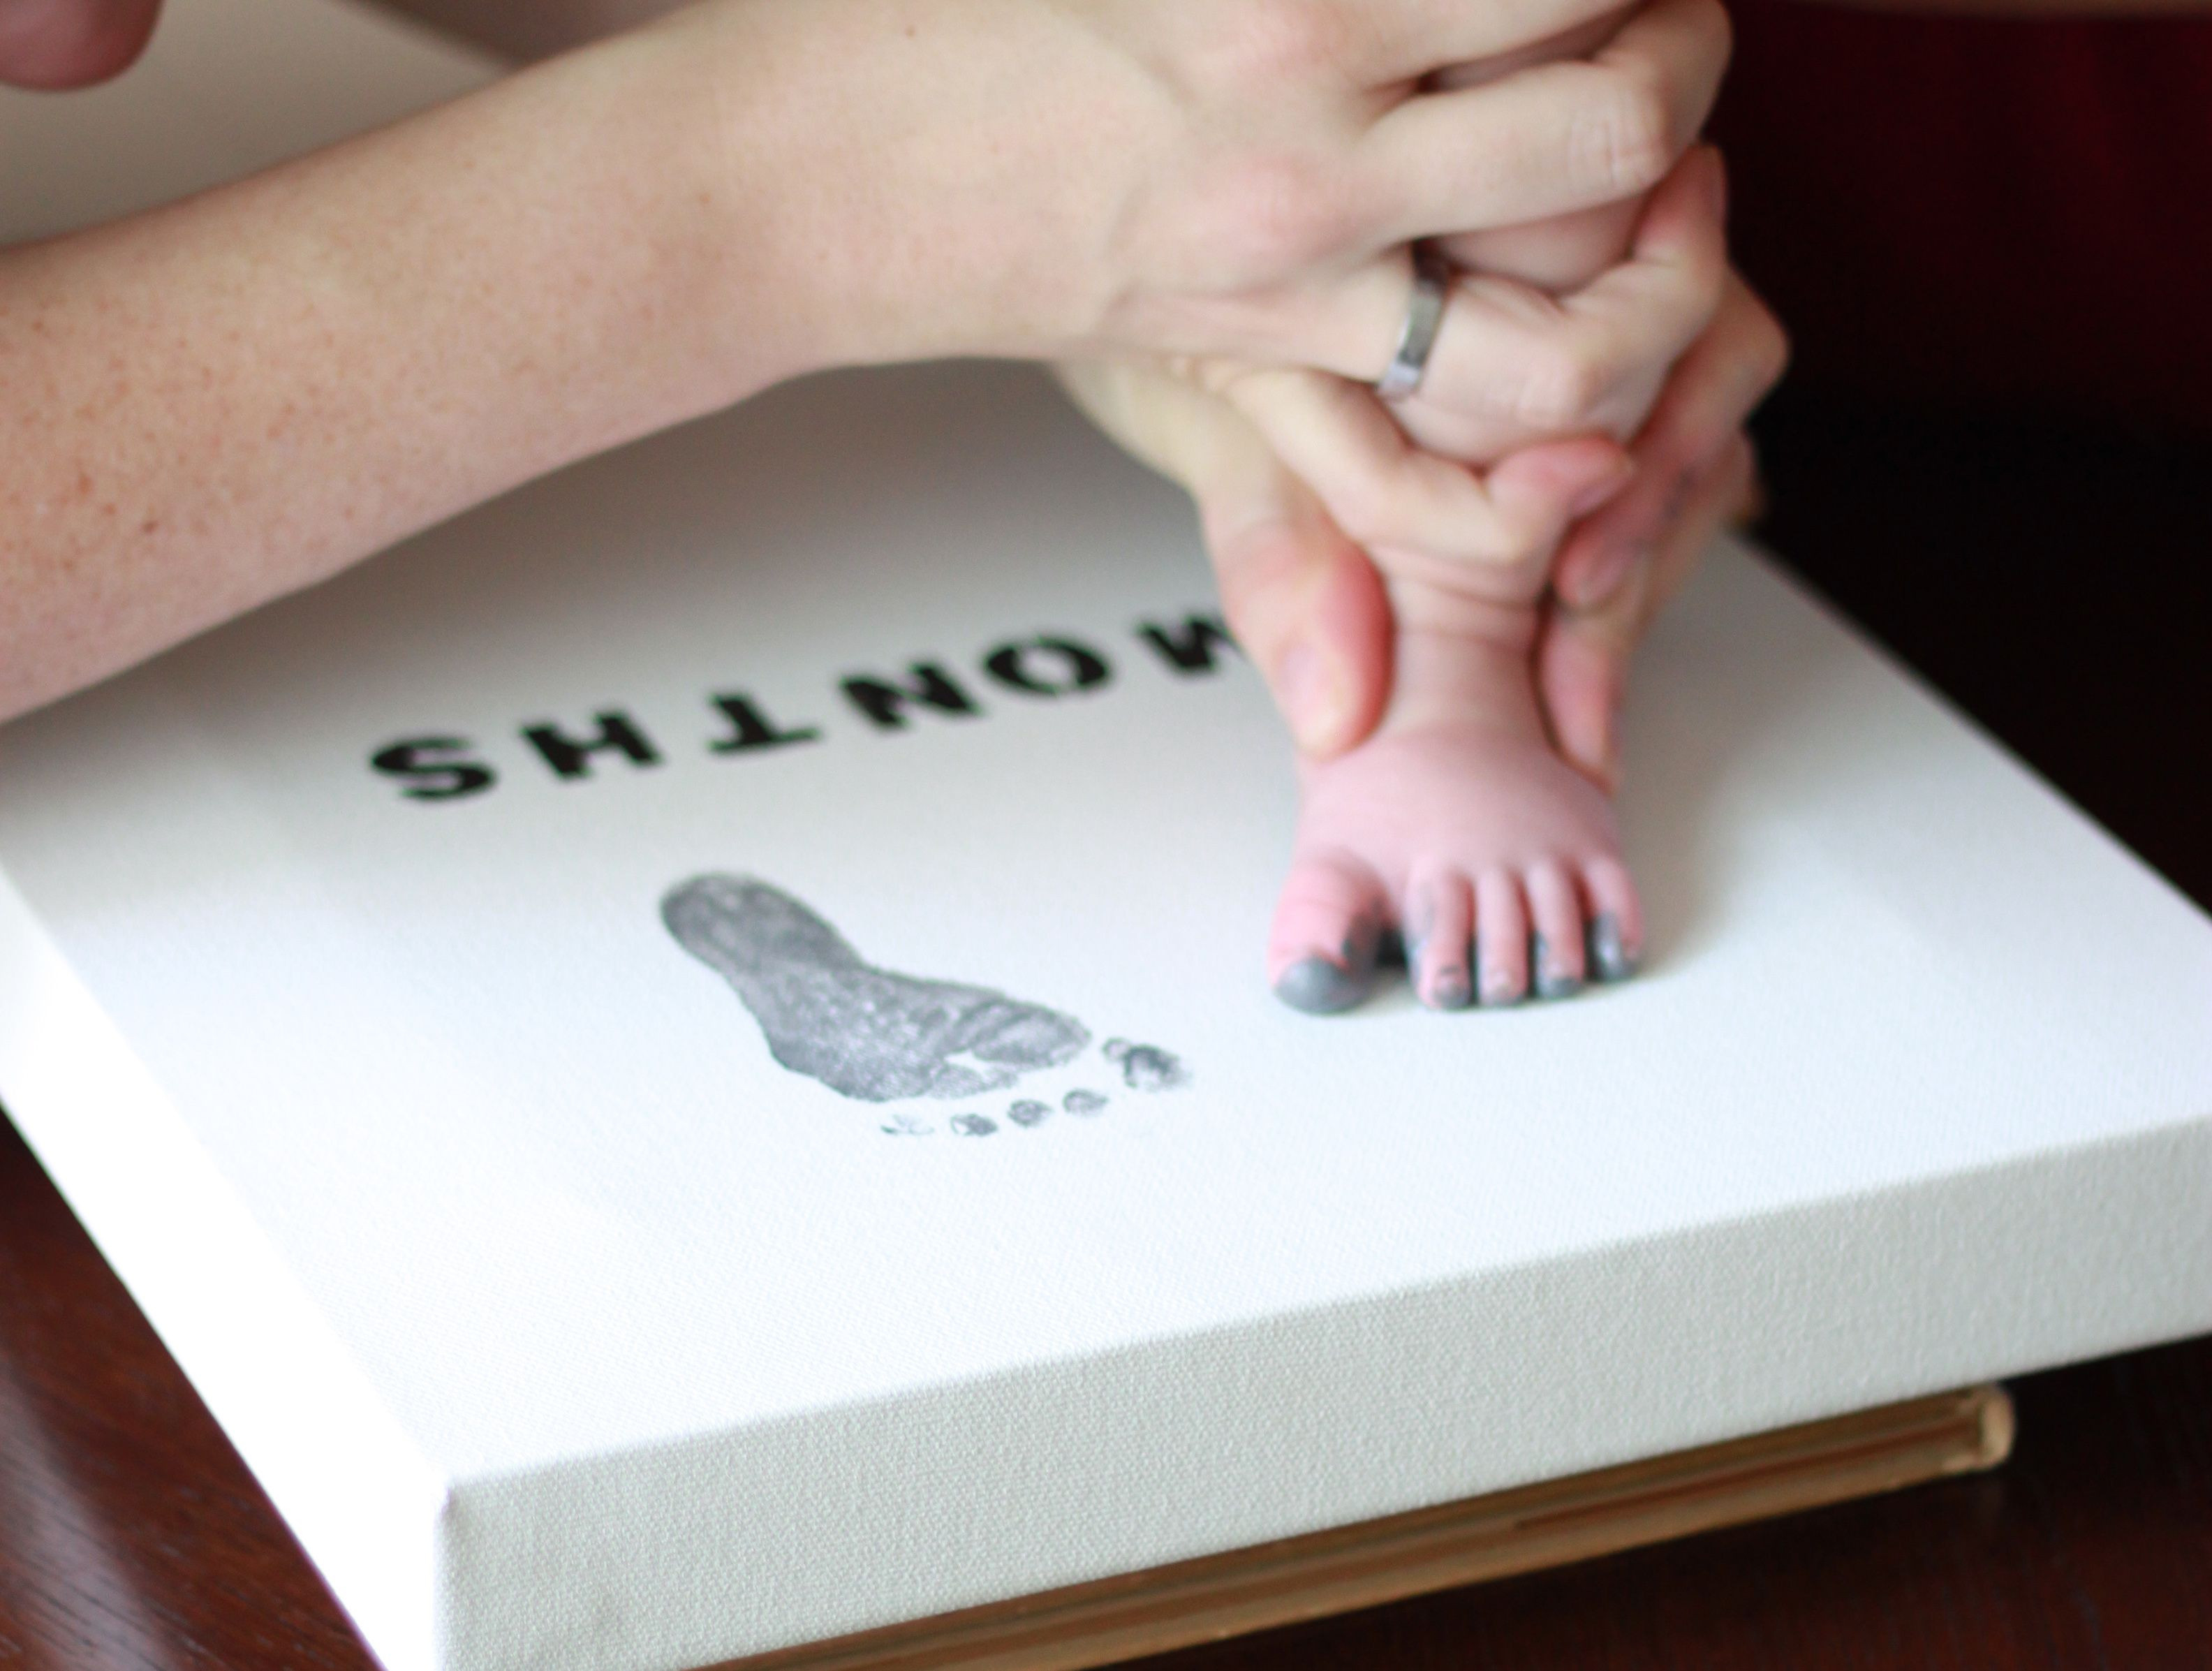 Best ideas about DIY Baby Footprint . Save or Pin canvas foot prints DIY Crafty Pinterest Now.